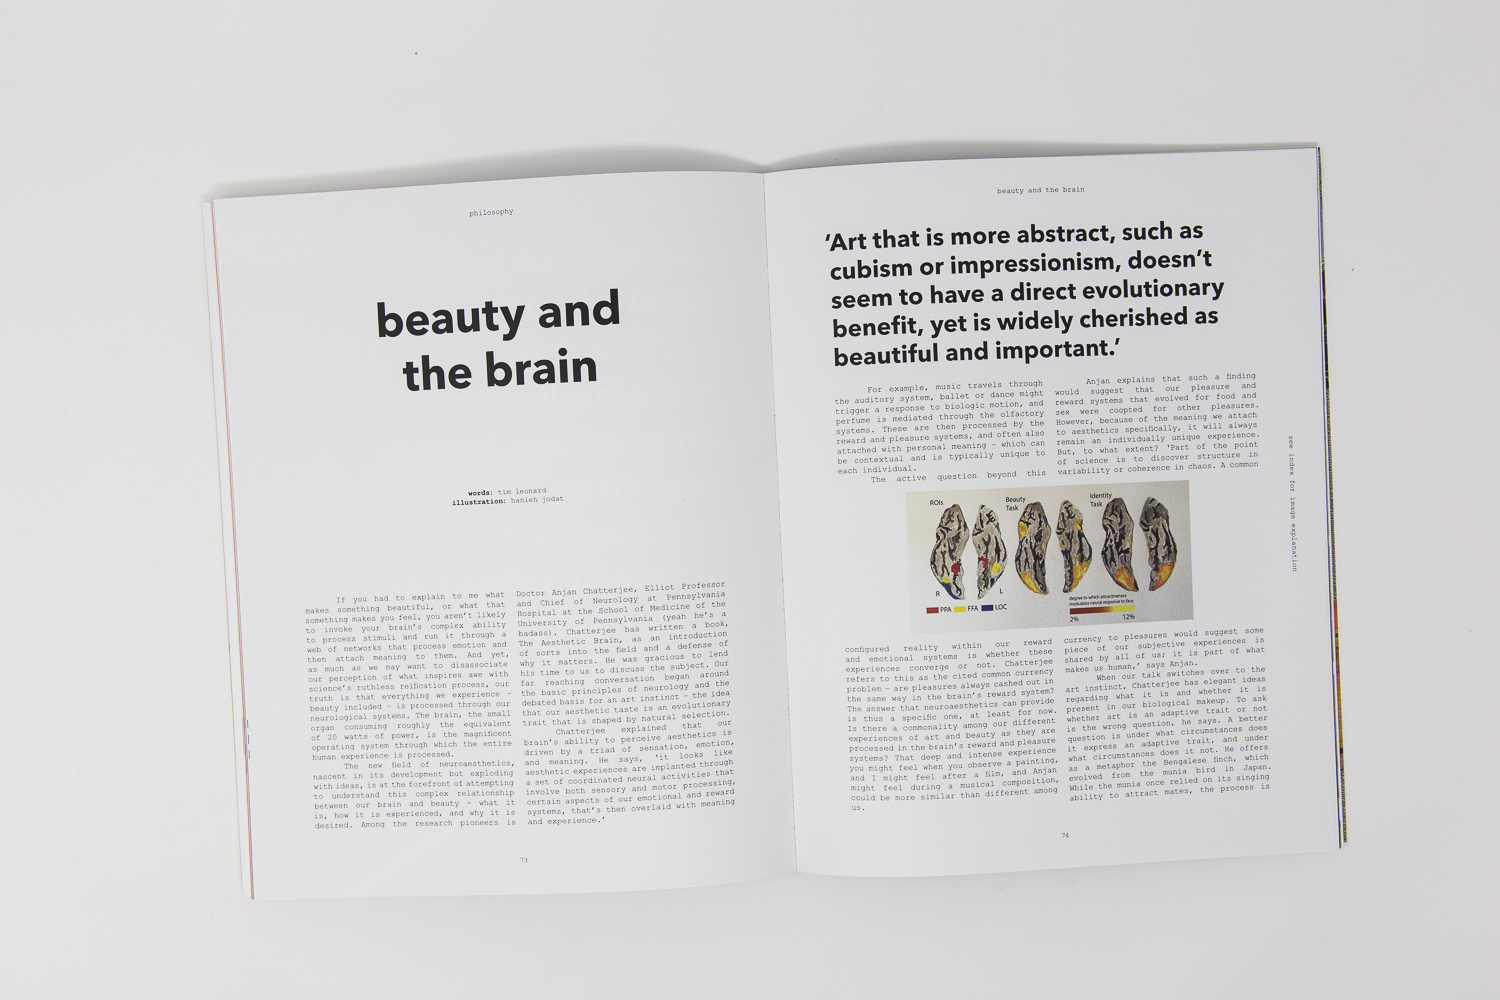 'interviews...are bold and at times eye-opening, trying to bring the subject to the reader in as much detail as possible. Lowercase typography and typewriter typeface create a strong visual style for the magazine' - arthurious, new york